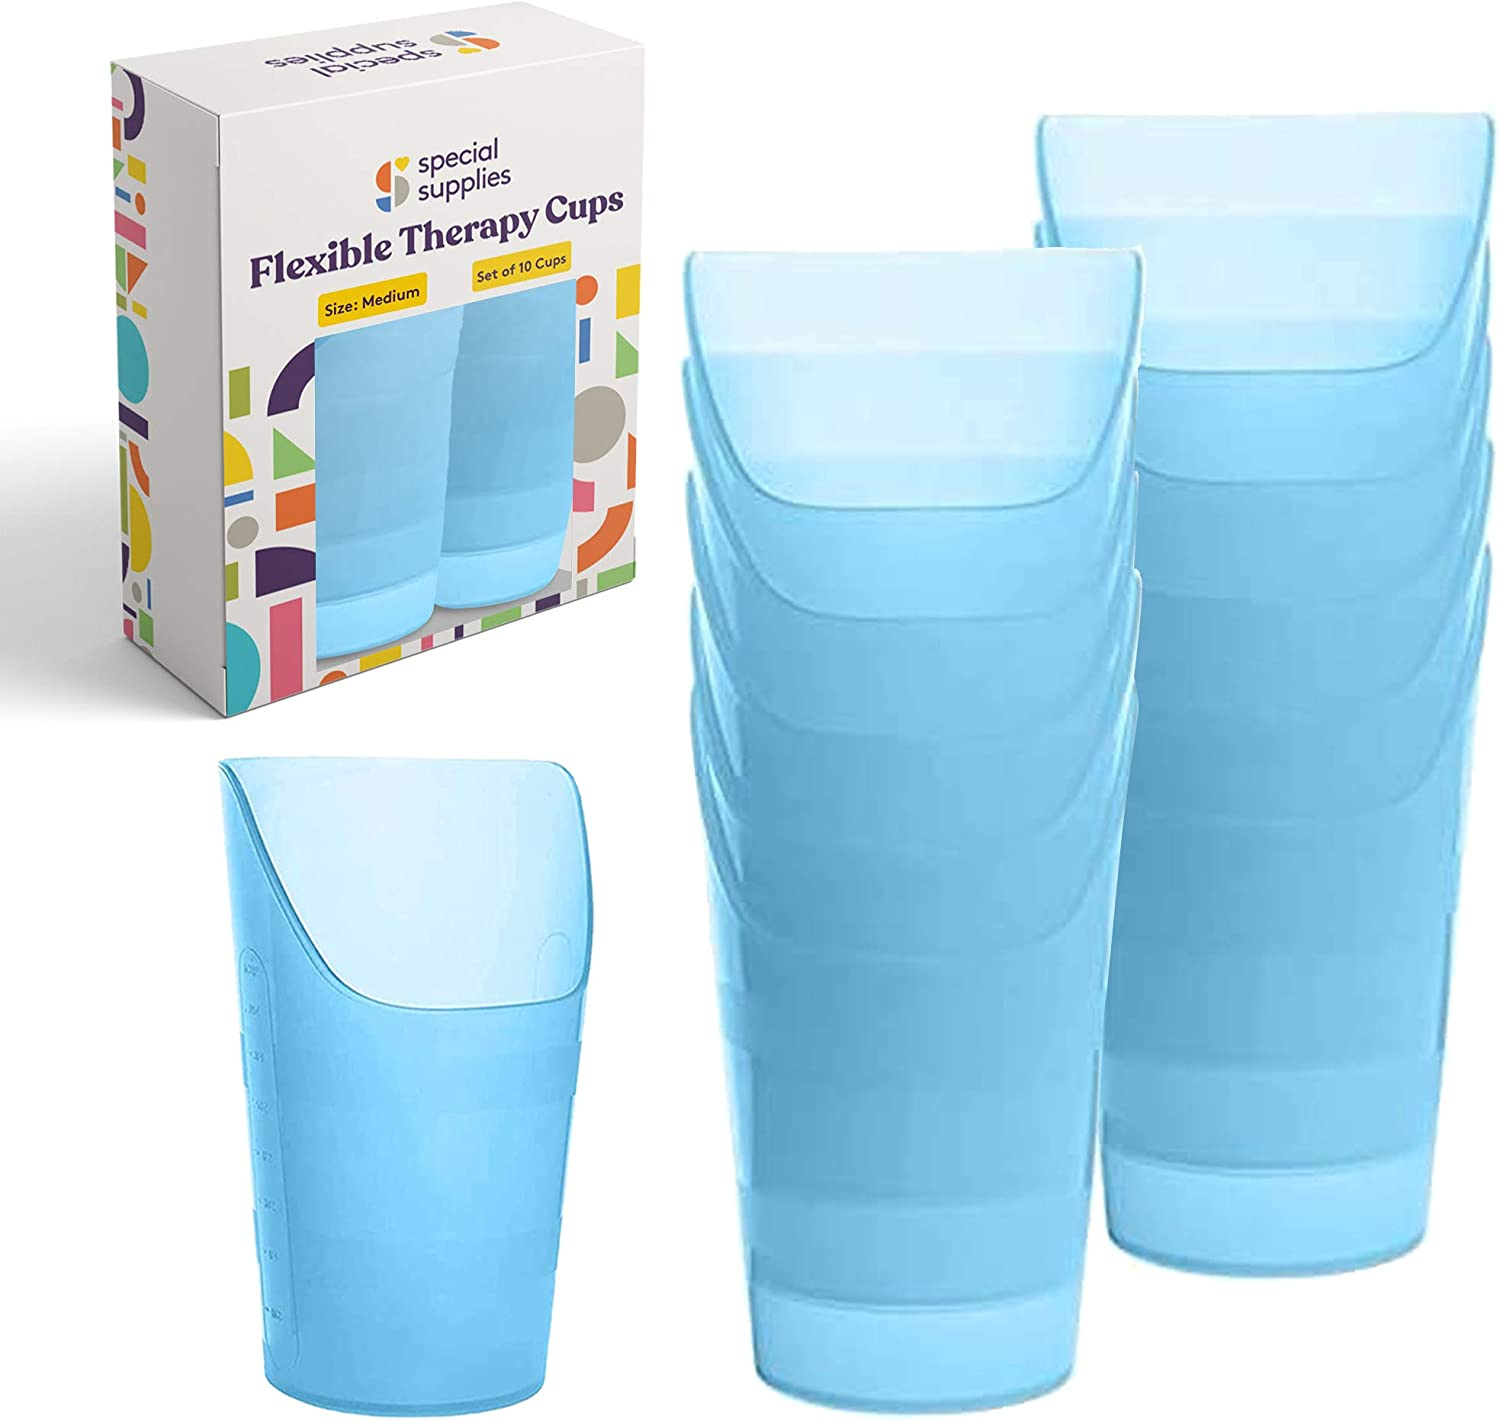 Special Supplies Pack of 10 Medium Flexible Drinking Cups with Nose Mold Cutout for Physical Therapy, Recovery, and Rehabilitation, BPA-Free Drink Tumblers, 7 oz.